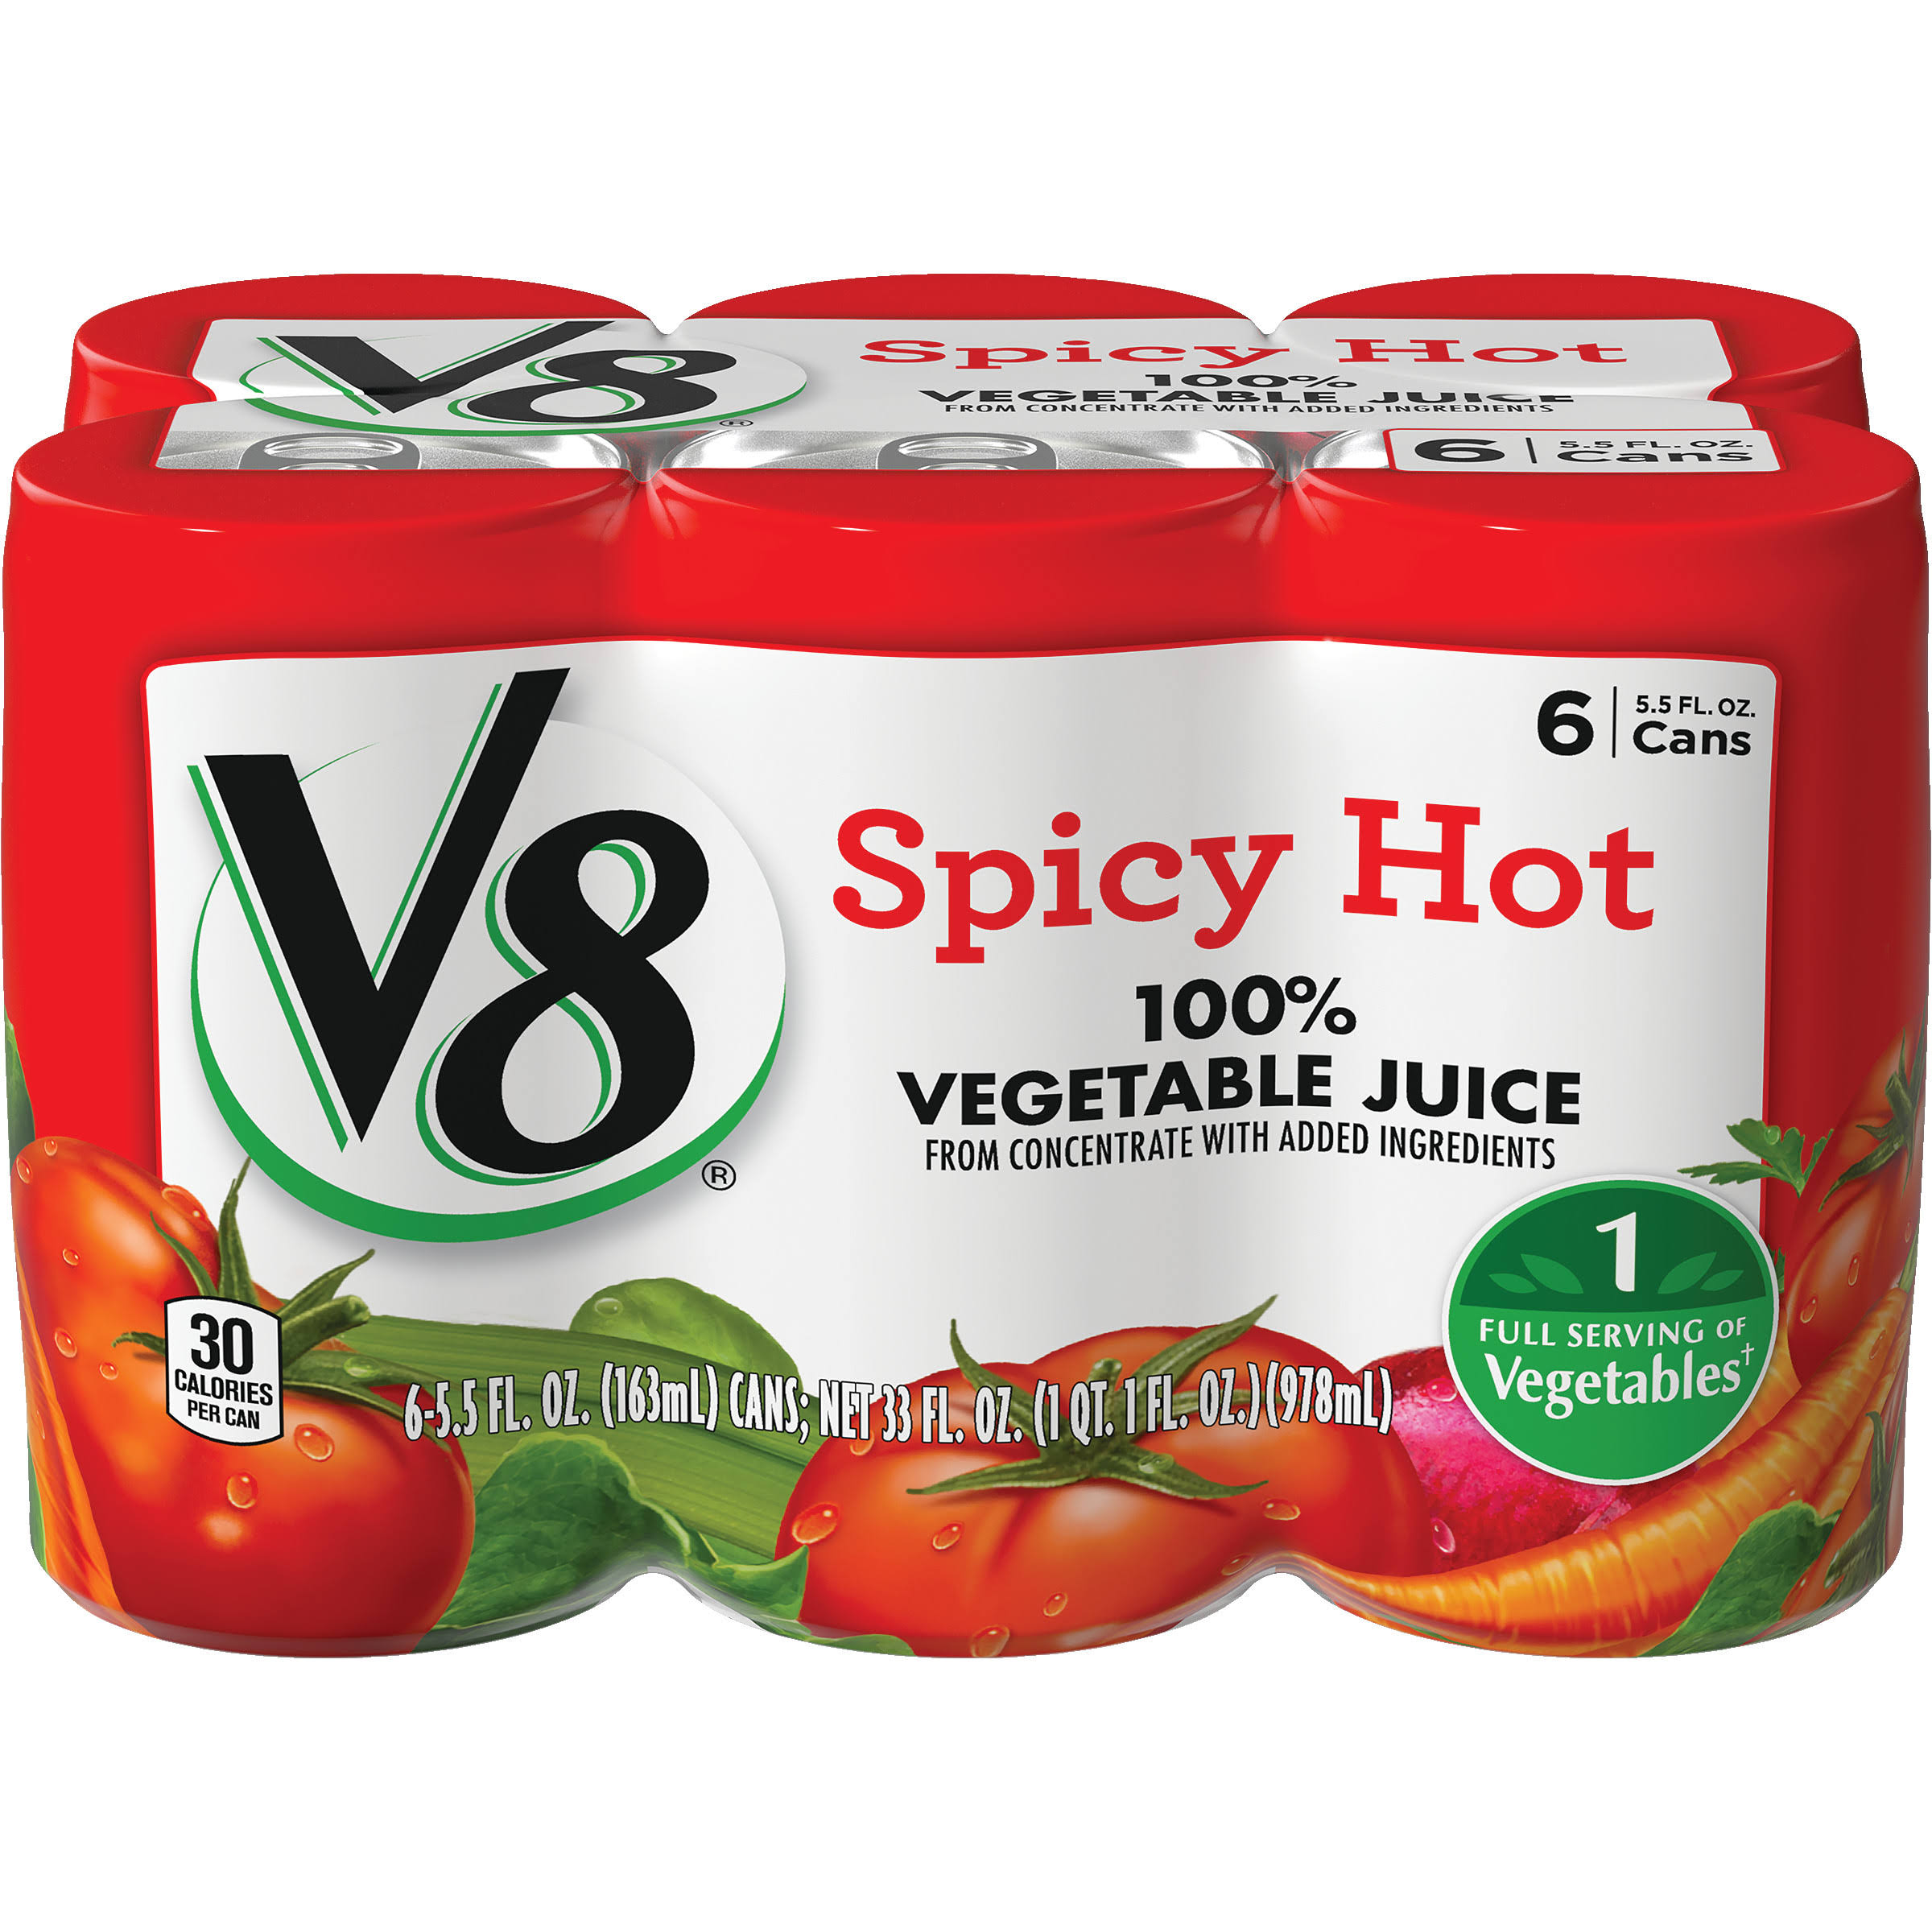 V8 Vegetable Juice - Spicy Hot, 5.5oz, 6pk